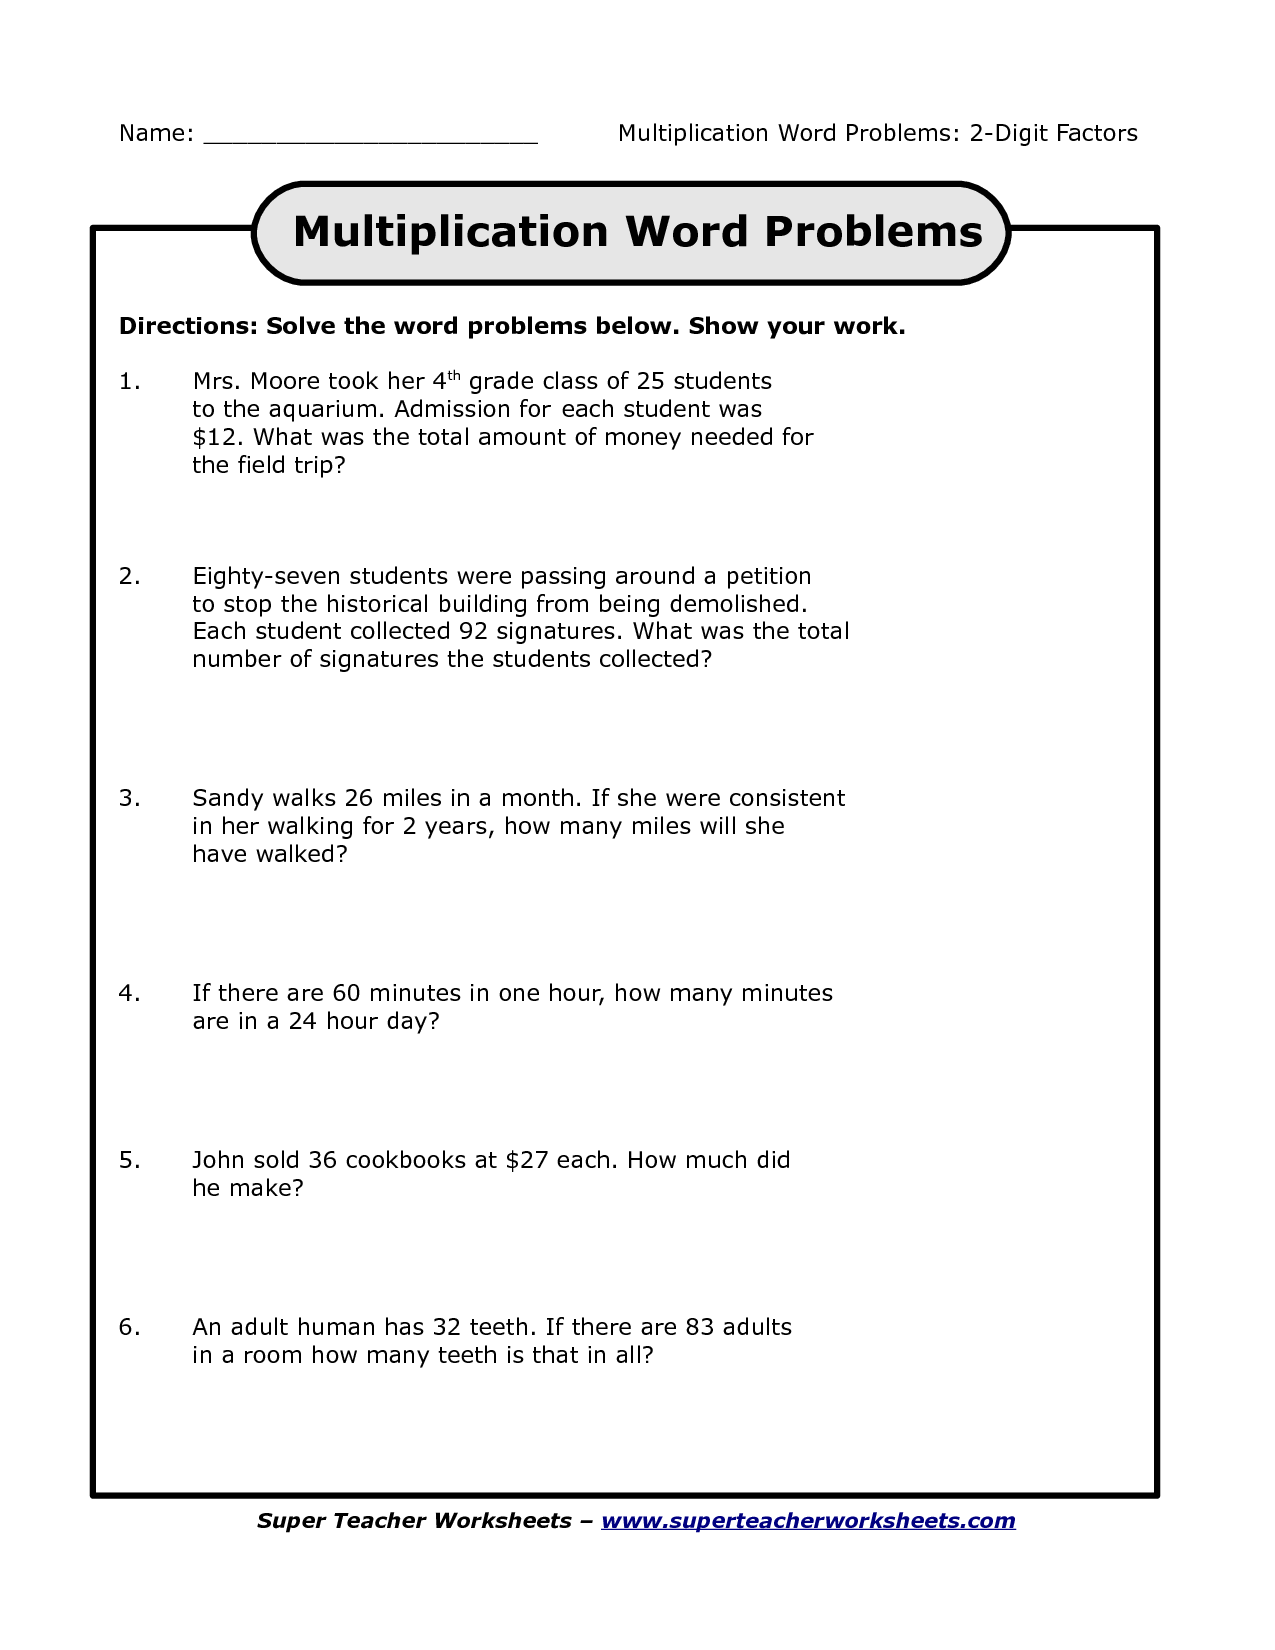 Fourth Step Worksheet